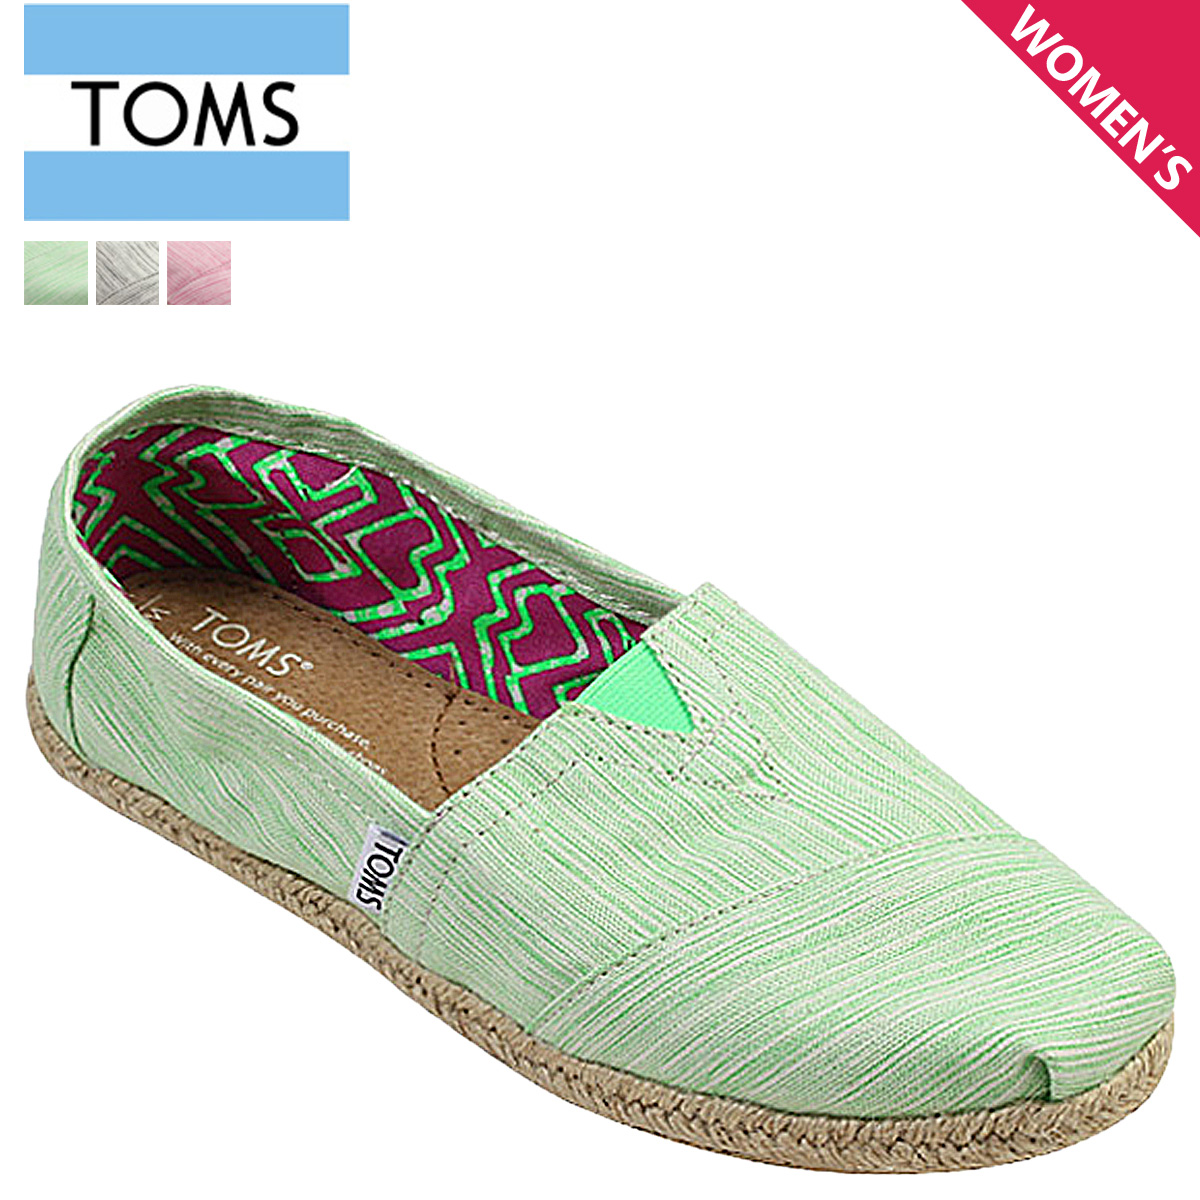 best service 18628 2eb31 Thoms shoes TOMS SHOES Lady's slip-ons SPACE-DYED WOMEN'S CLASSICS Tom's  Thoms shoes